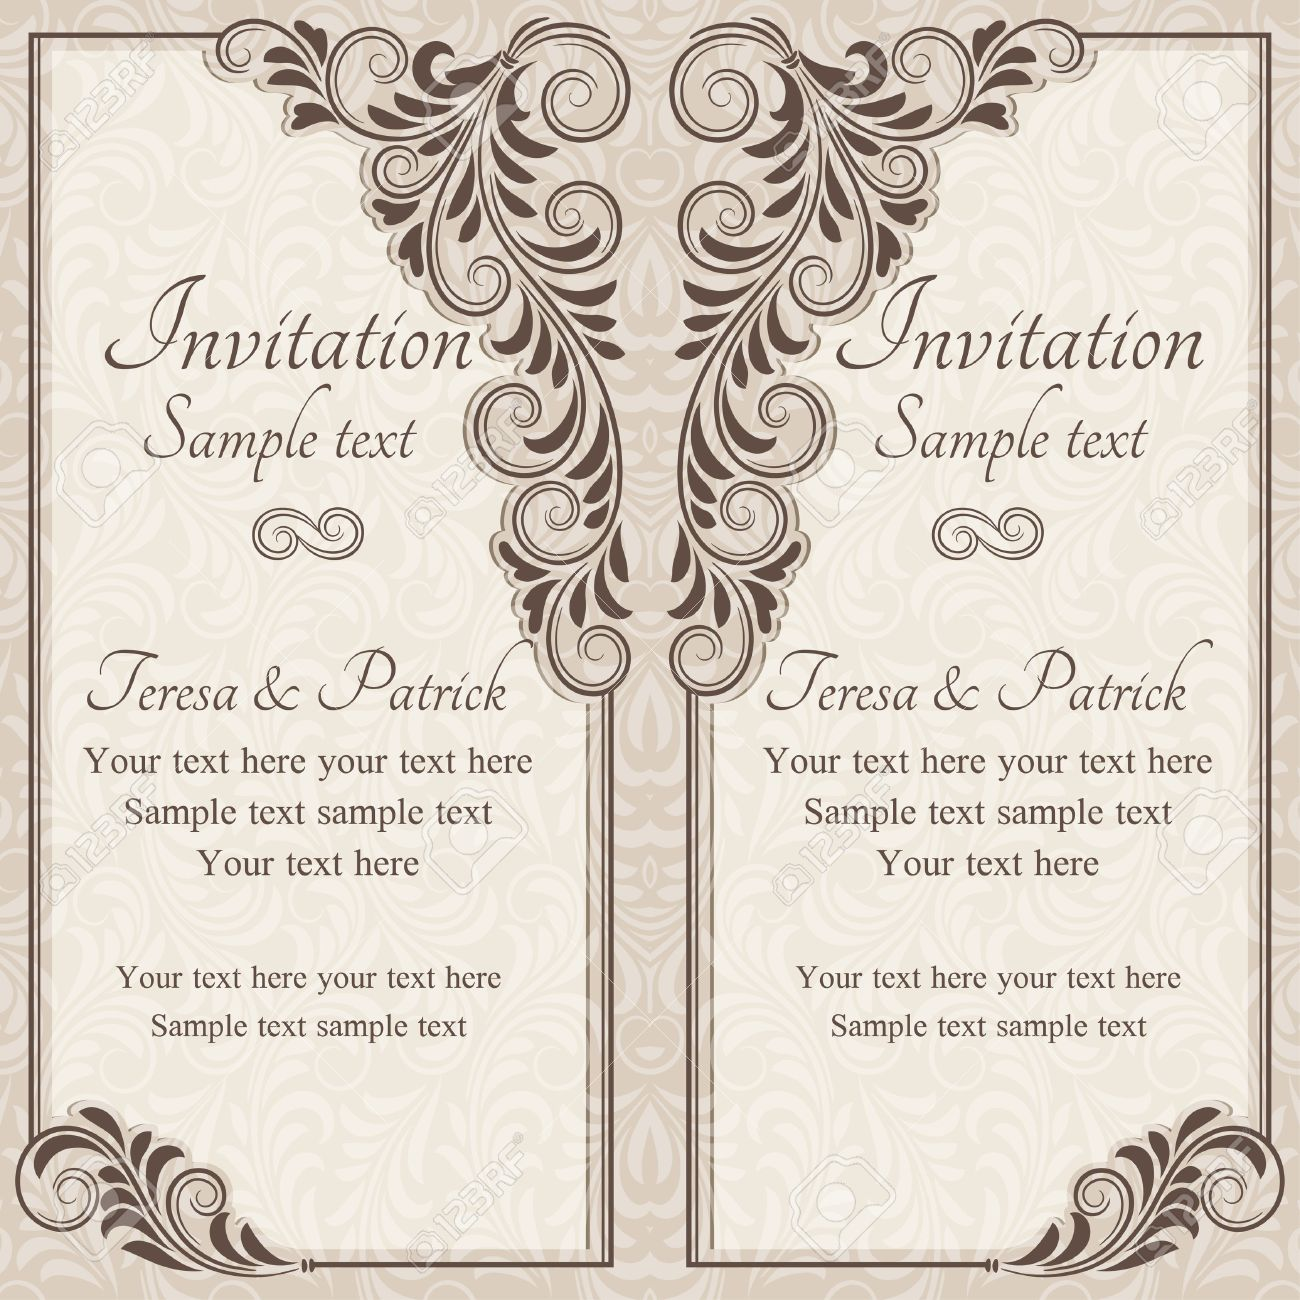 Wedding Invitation Background Stock Photos Royalty Free Business Images